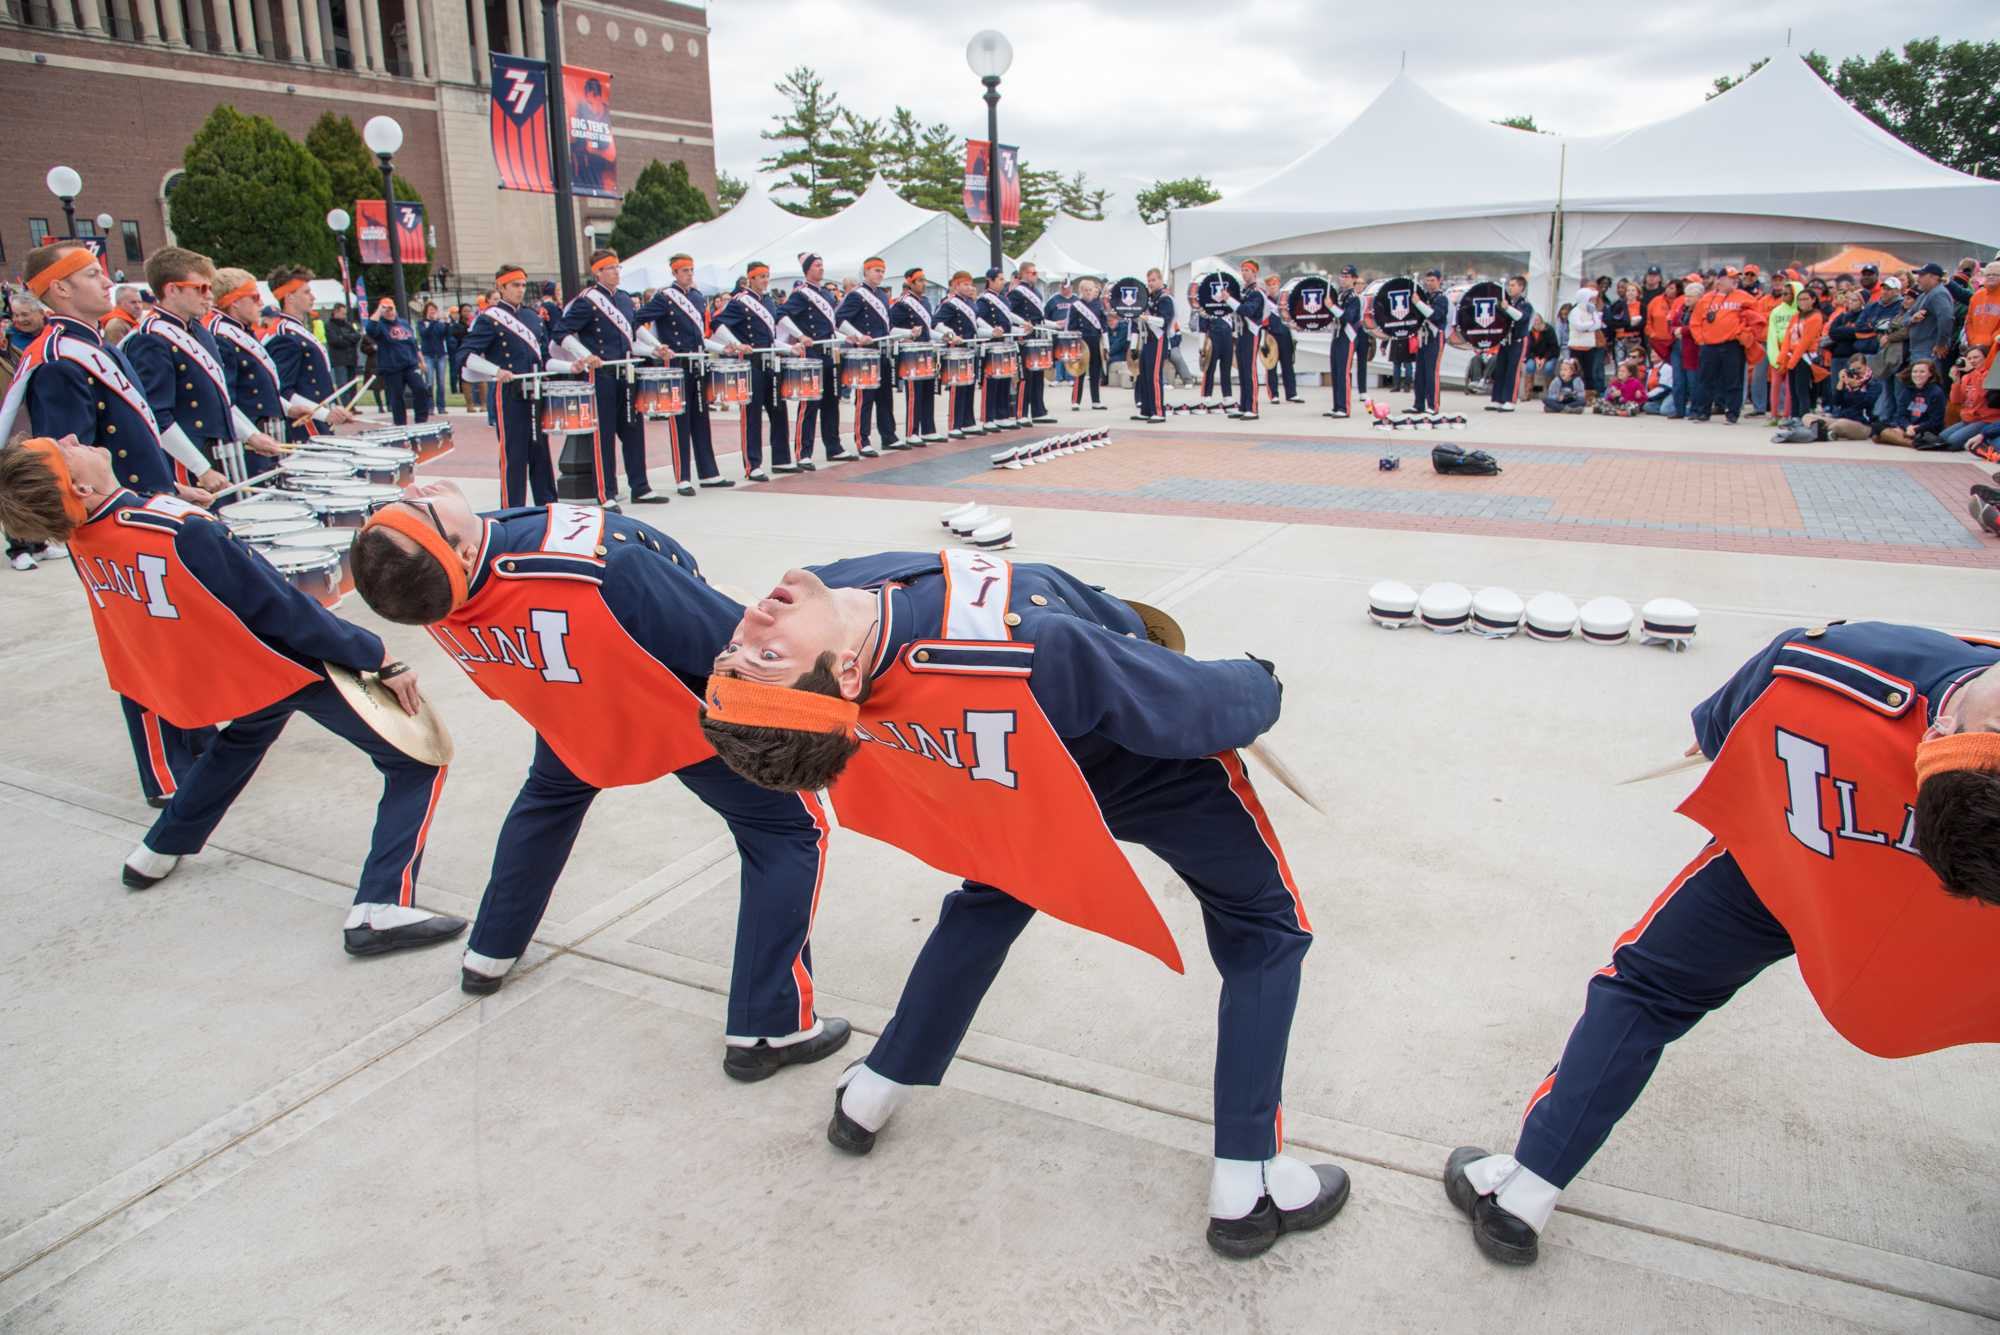 The+Marching+Illini+drum-line+performs+for+fans+in+Grange+Grove+before+the+game.